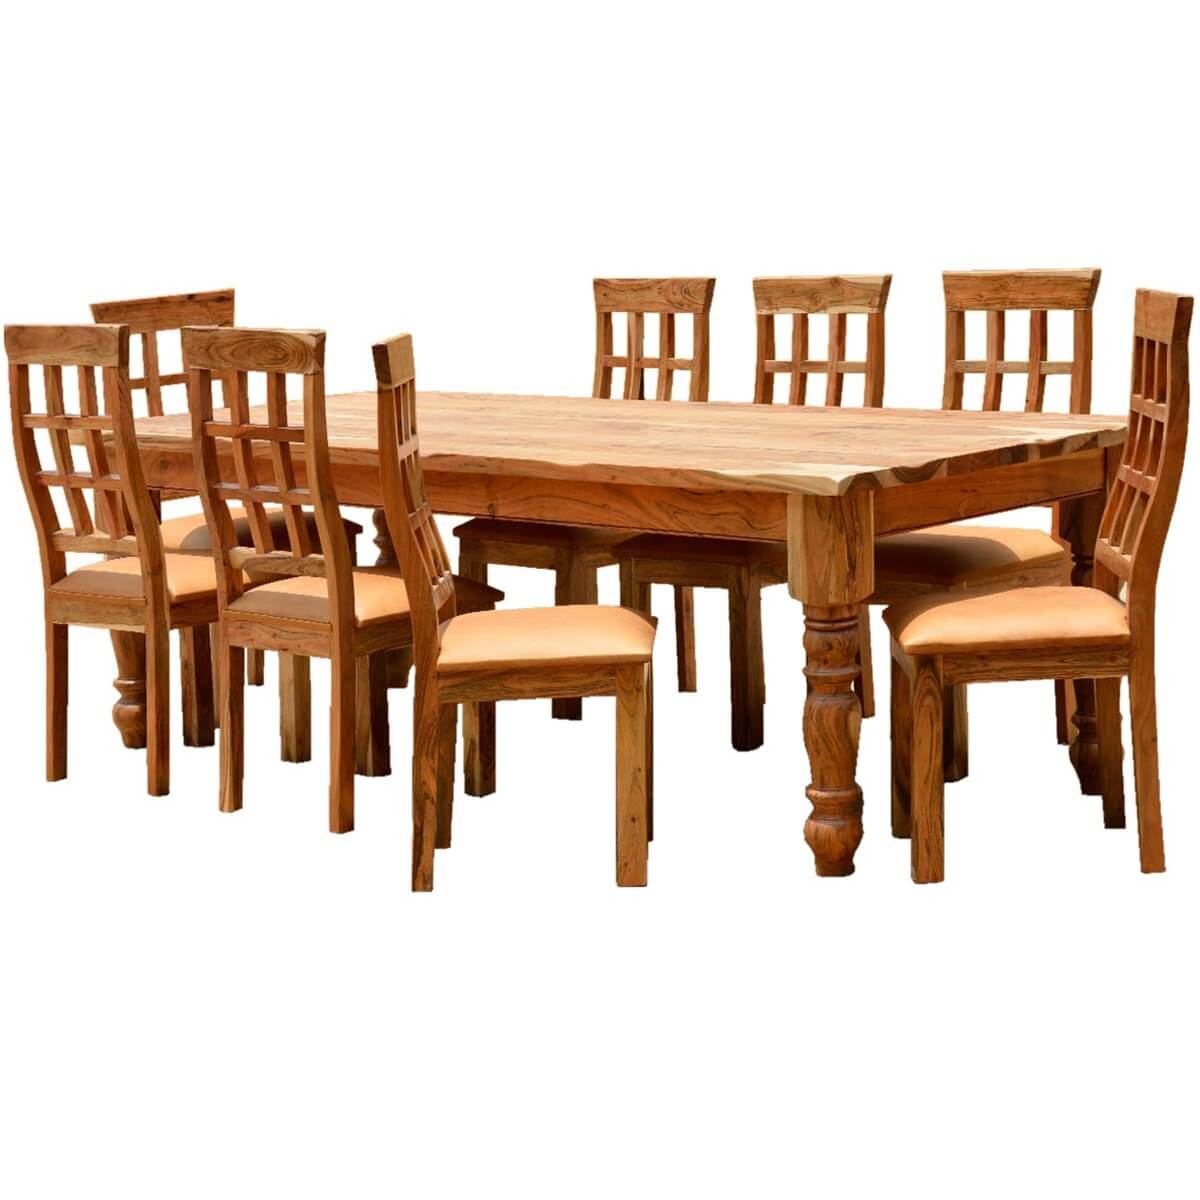 Dining Room Furniture Rustic Rustic Furniture Farmhouse Solid Wood Dining Table Chair Set